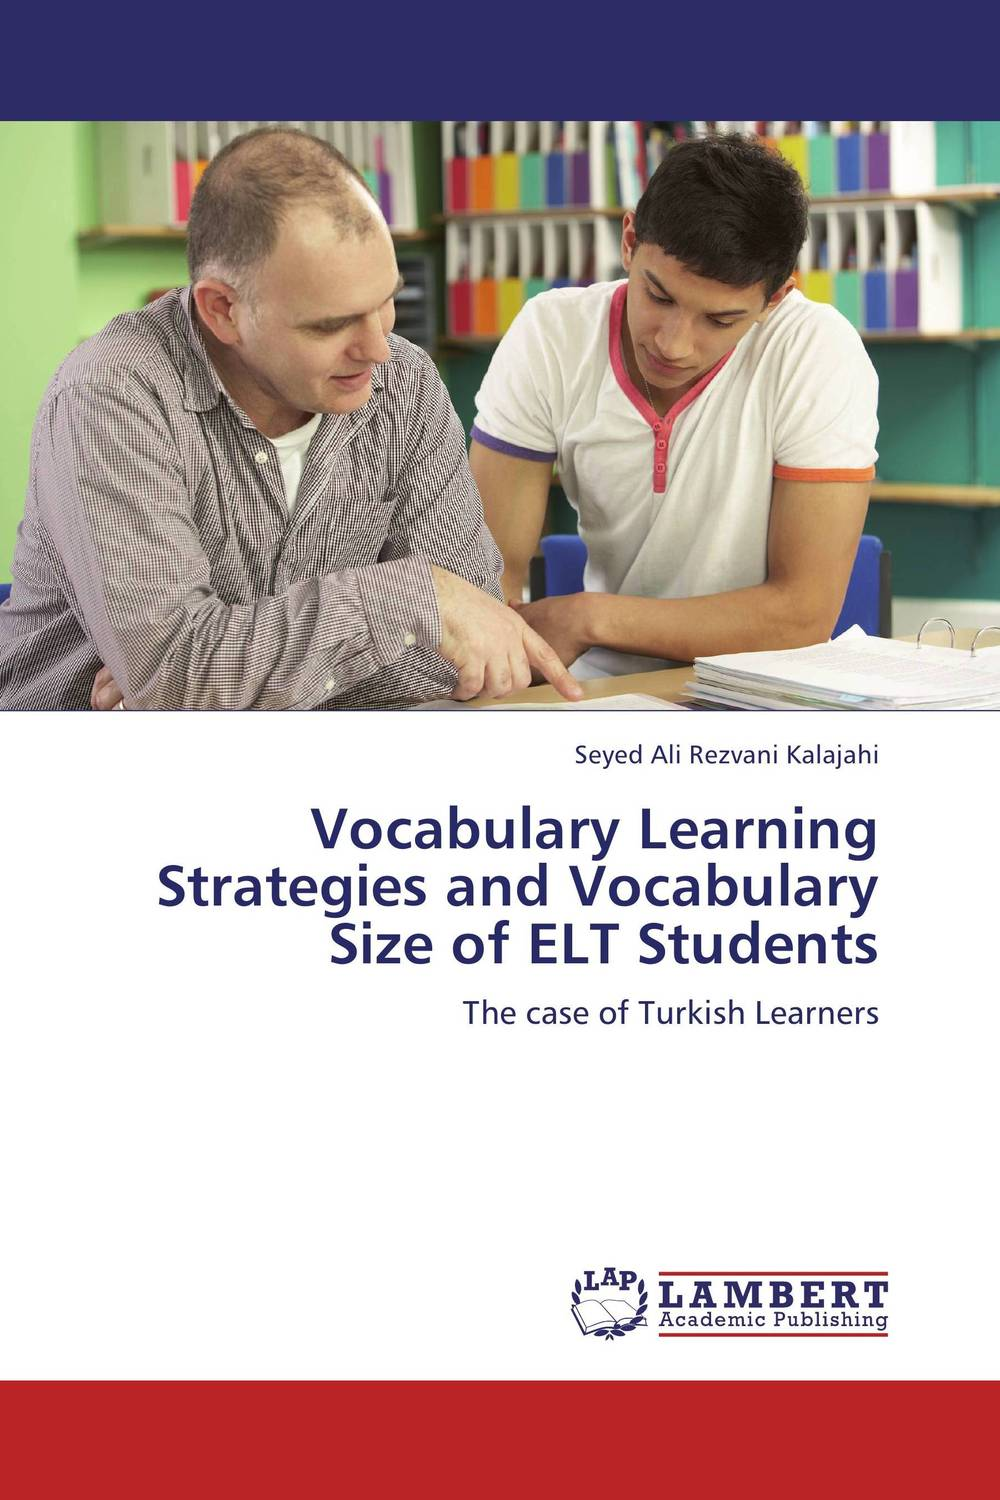 Vocabulary Learning Strategies and Vocabulary Size of ELT Students effectiveness of blended learning on achievement of english vocabulary